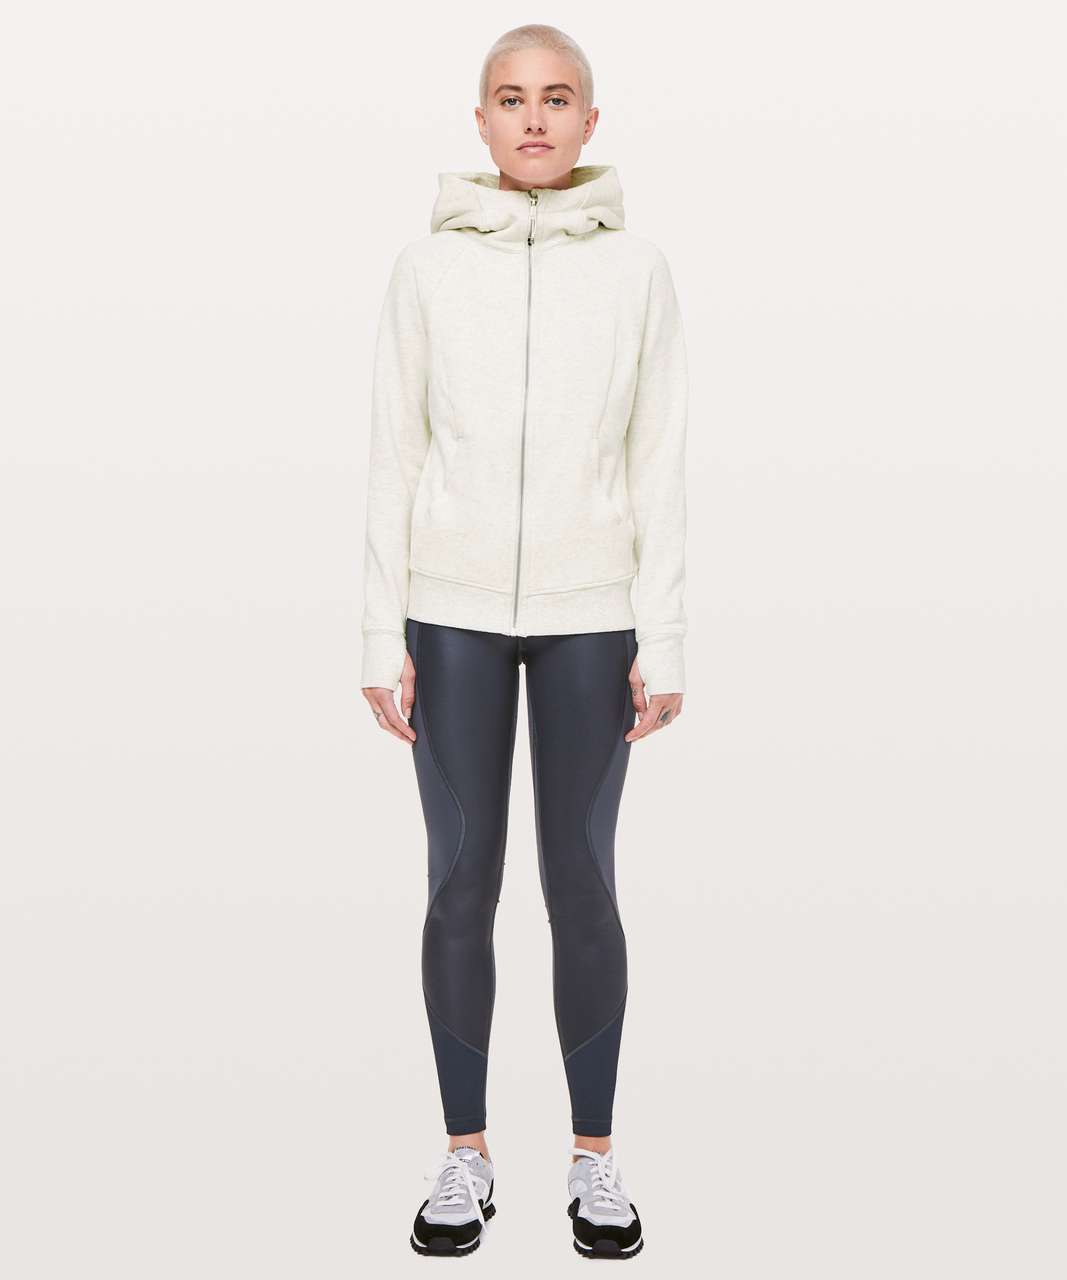 Lululemon Scuba Hoodie *Light Cotton Fleece - Heathered Light Ivory